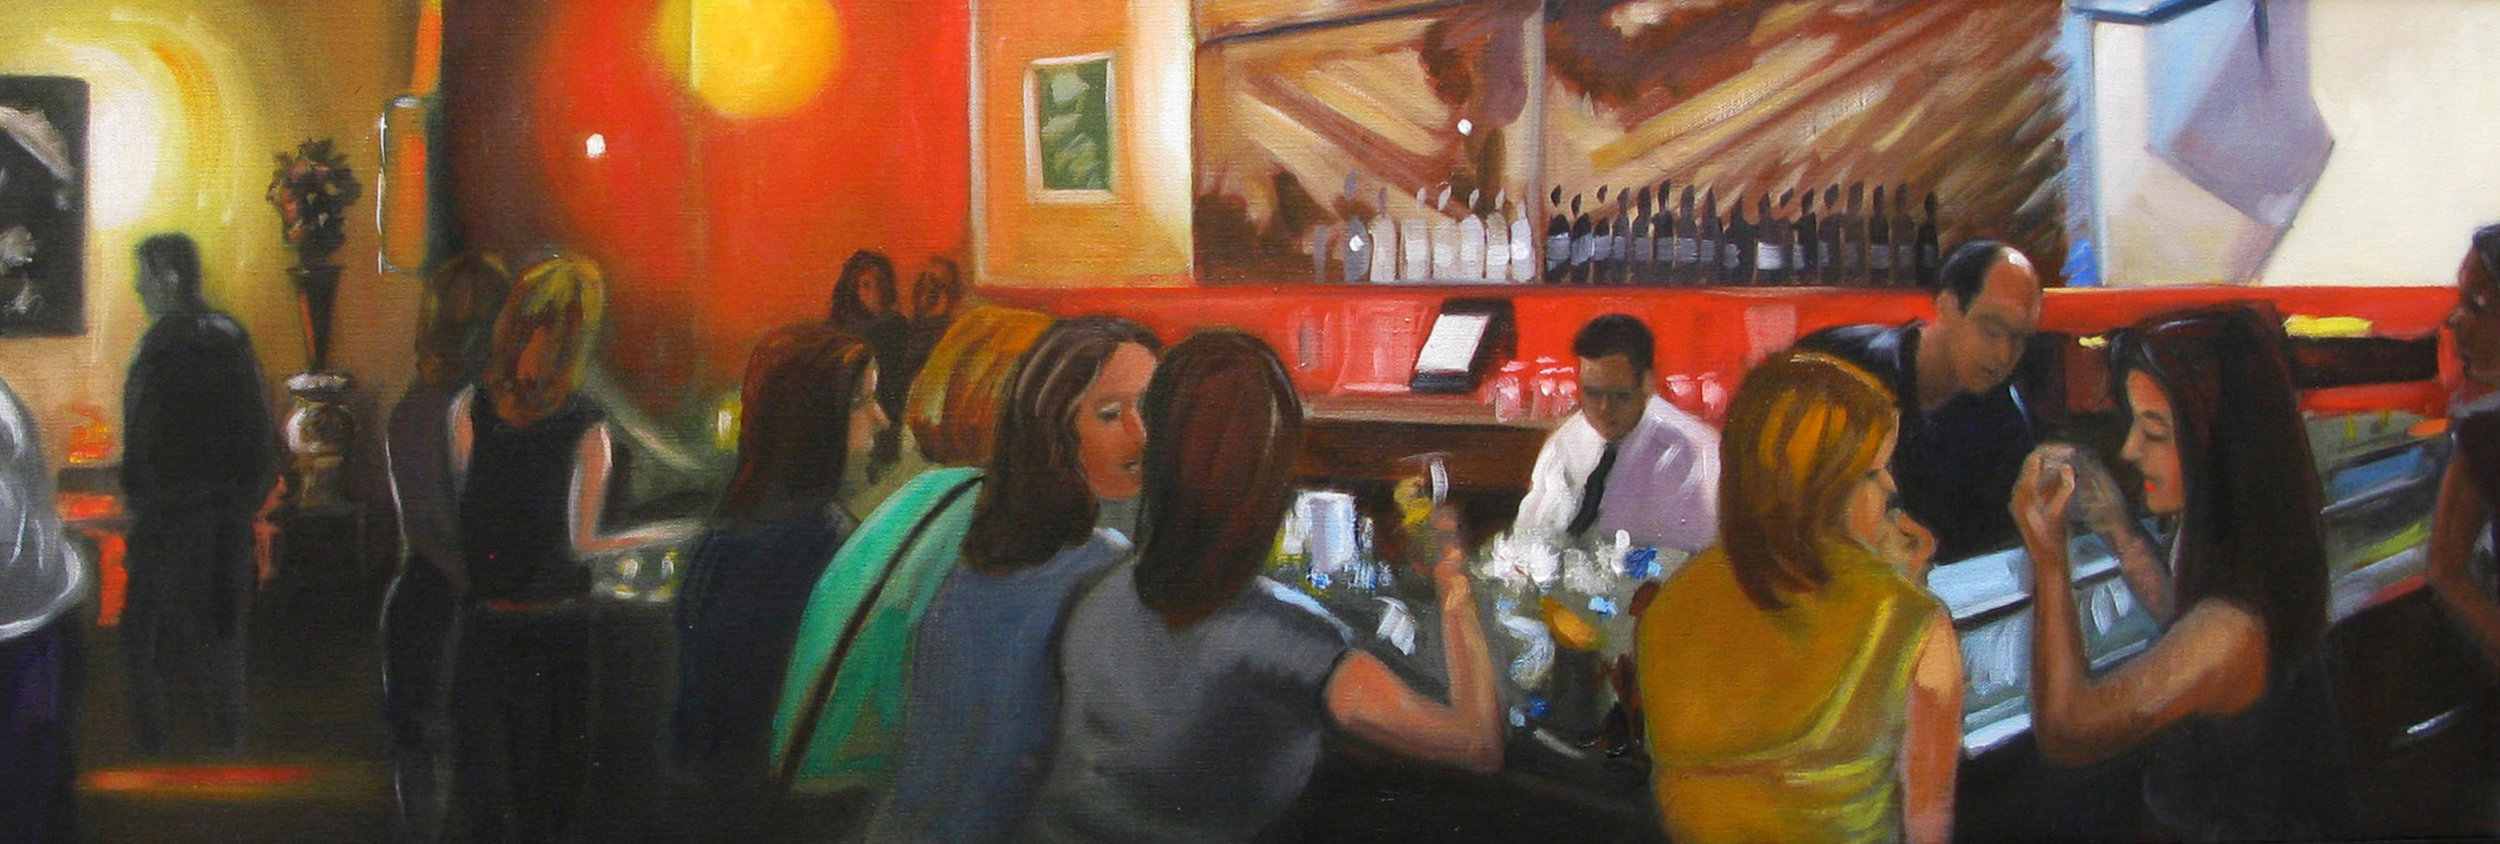 Raul Guerrero  Hal's Bar and Grill: Venice, 2009  Oil on linen 16 x 46 inches (40.6 x 116.8 centimeters)